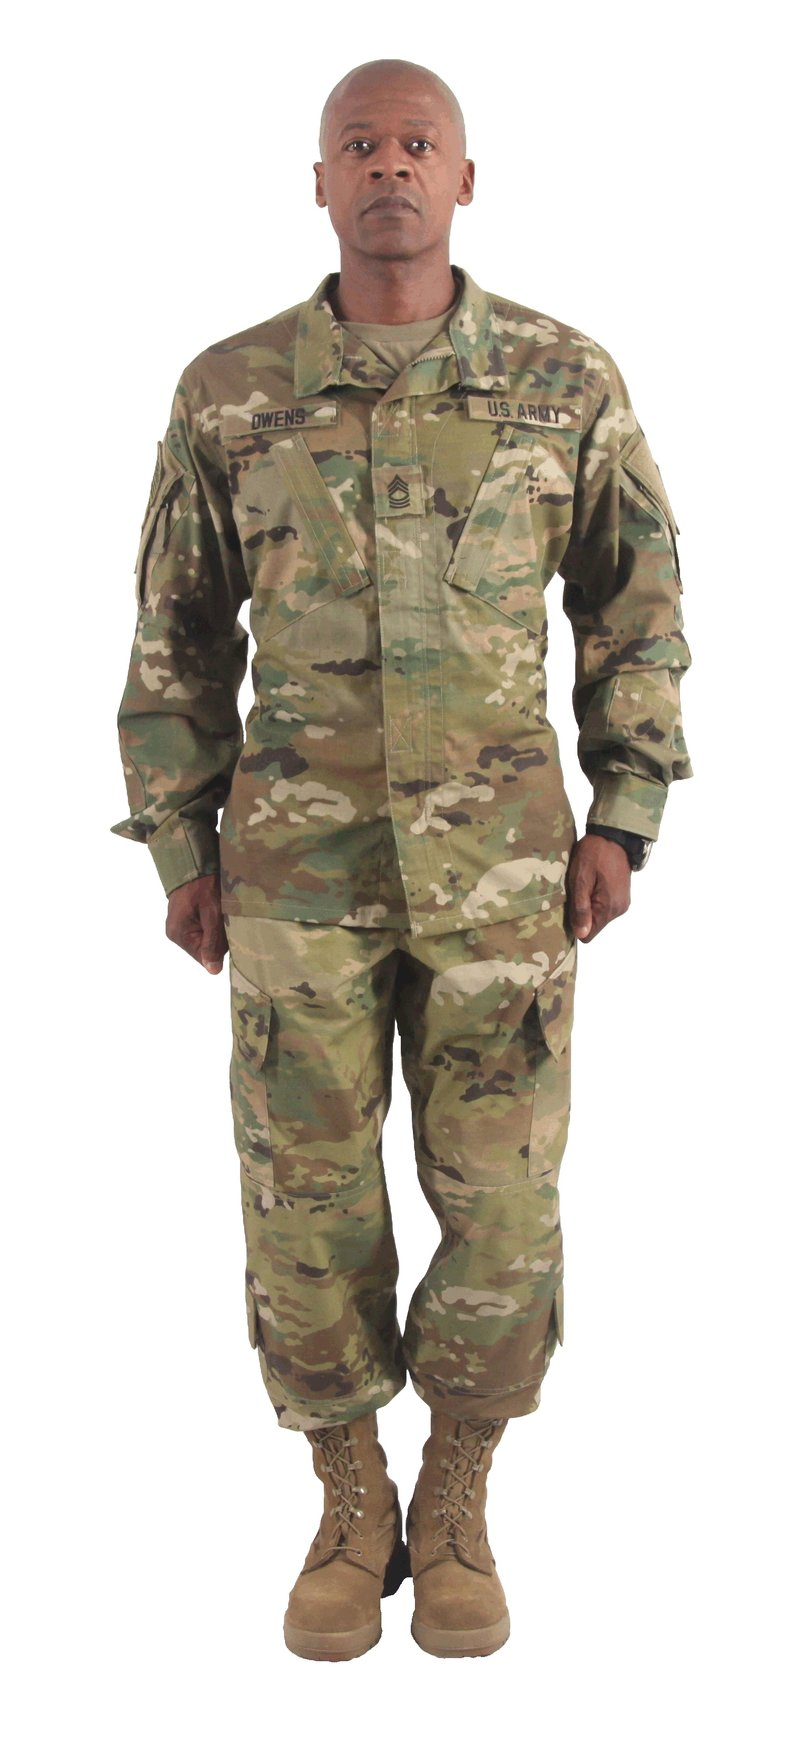 Wear Of Acu Uniform 109